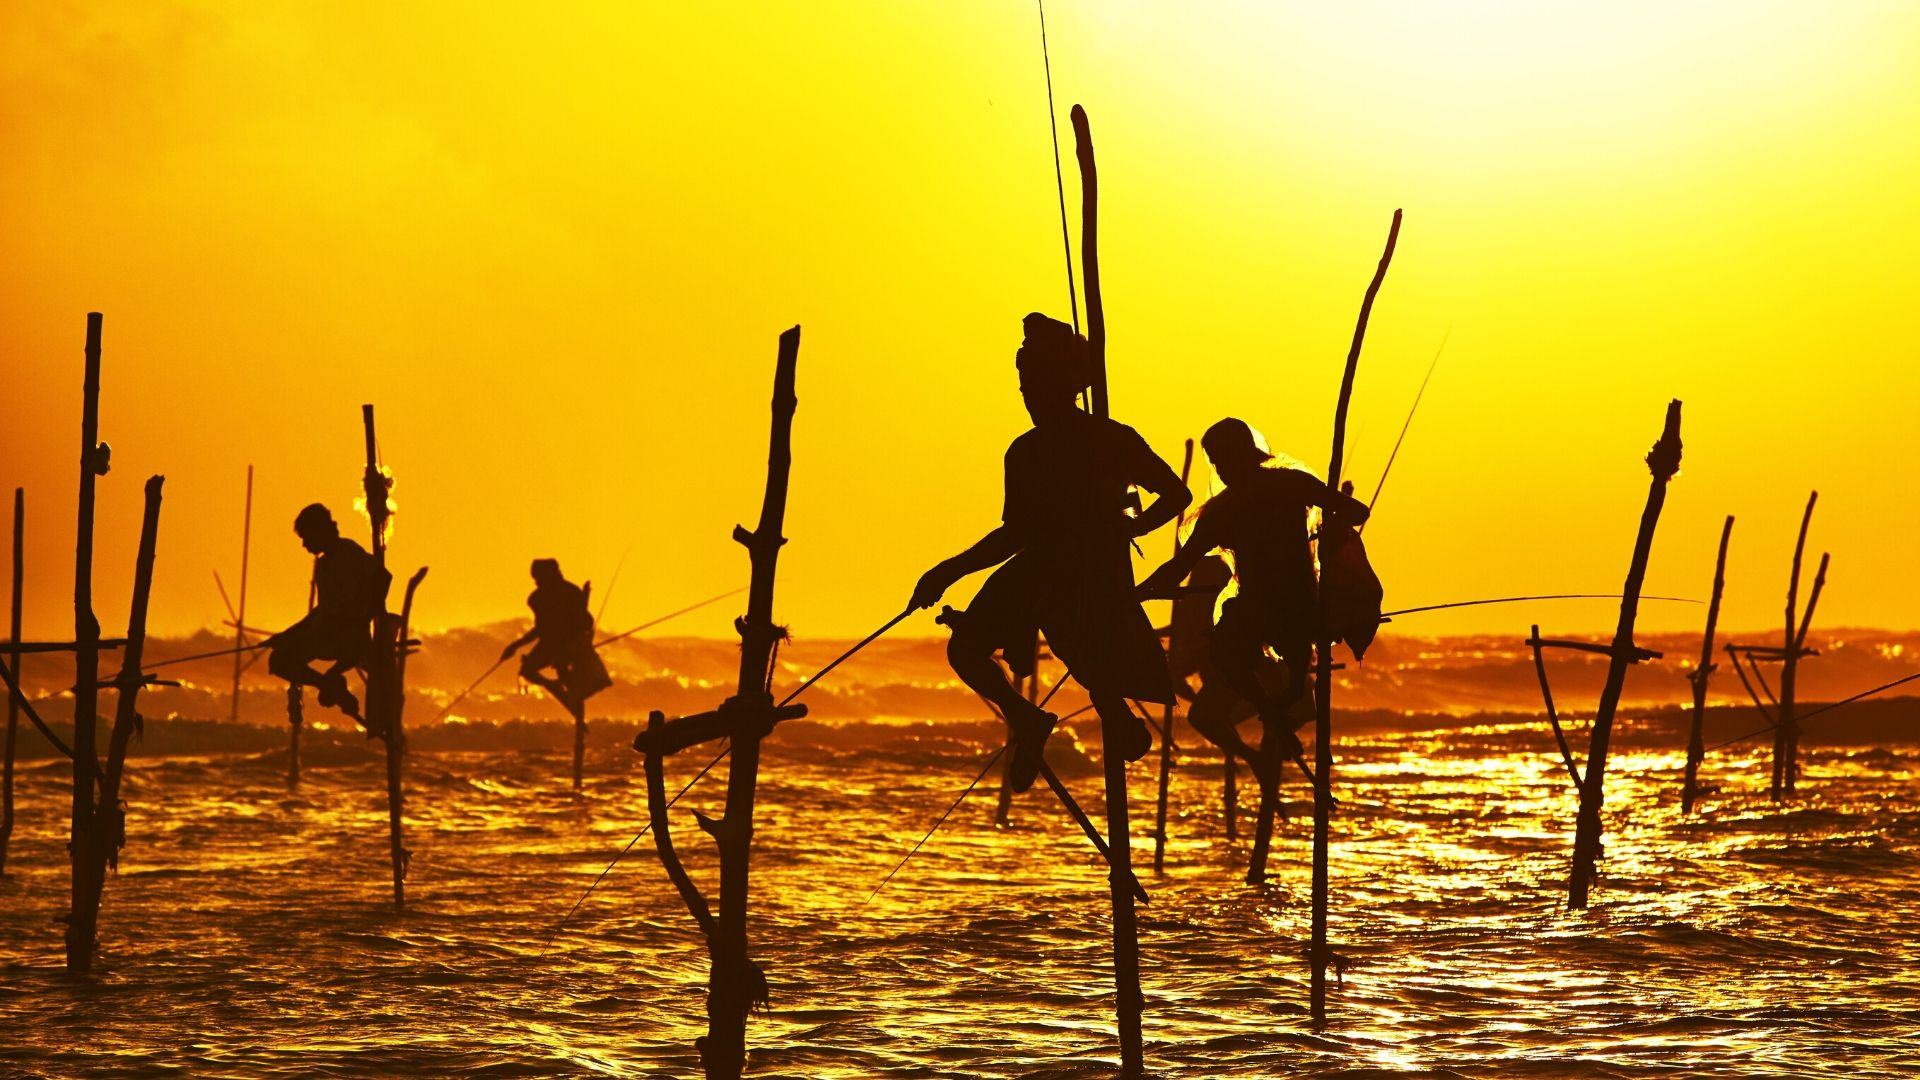 Silhouettes of the traditional fishermen at the sunset near Galle in Sri Lanka